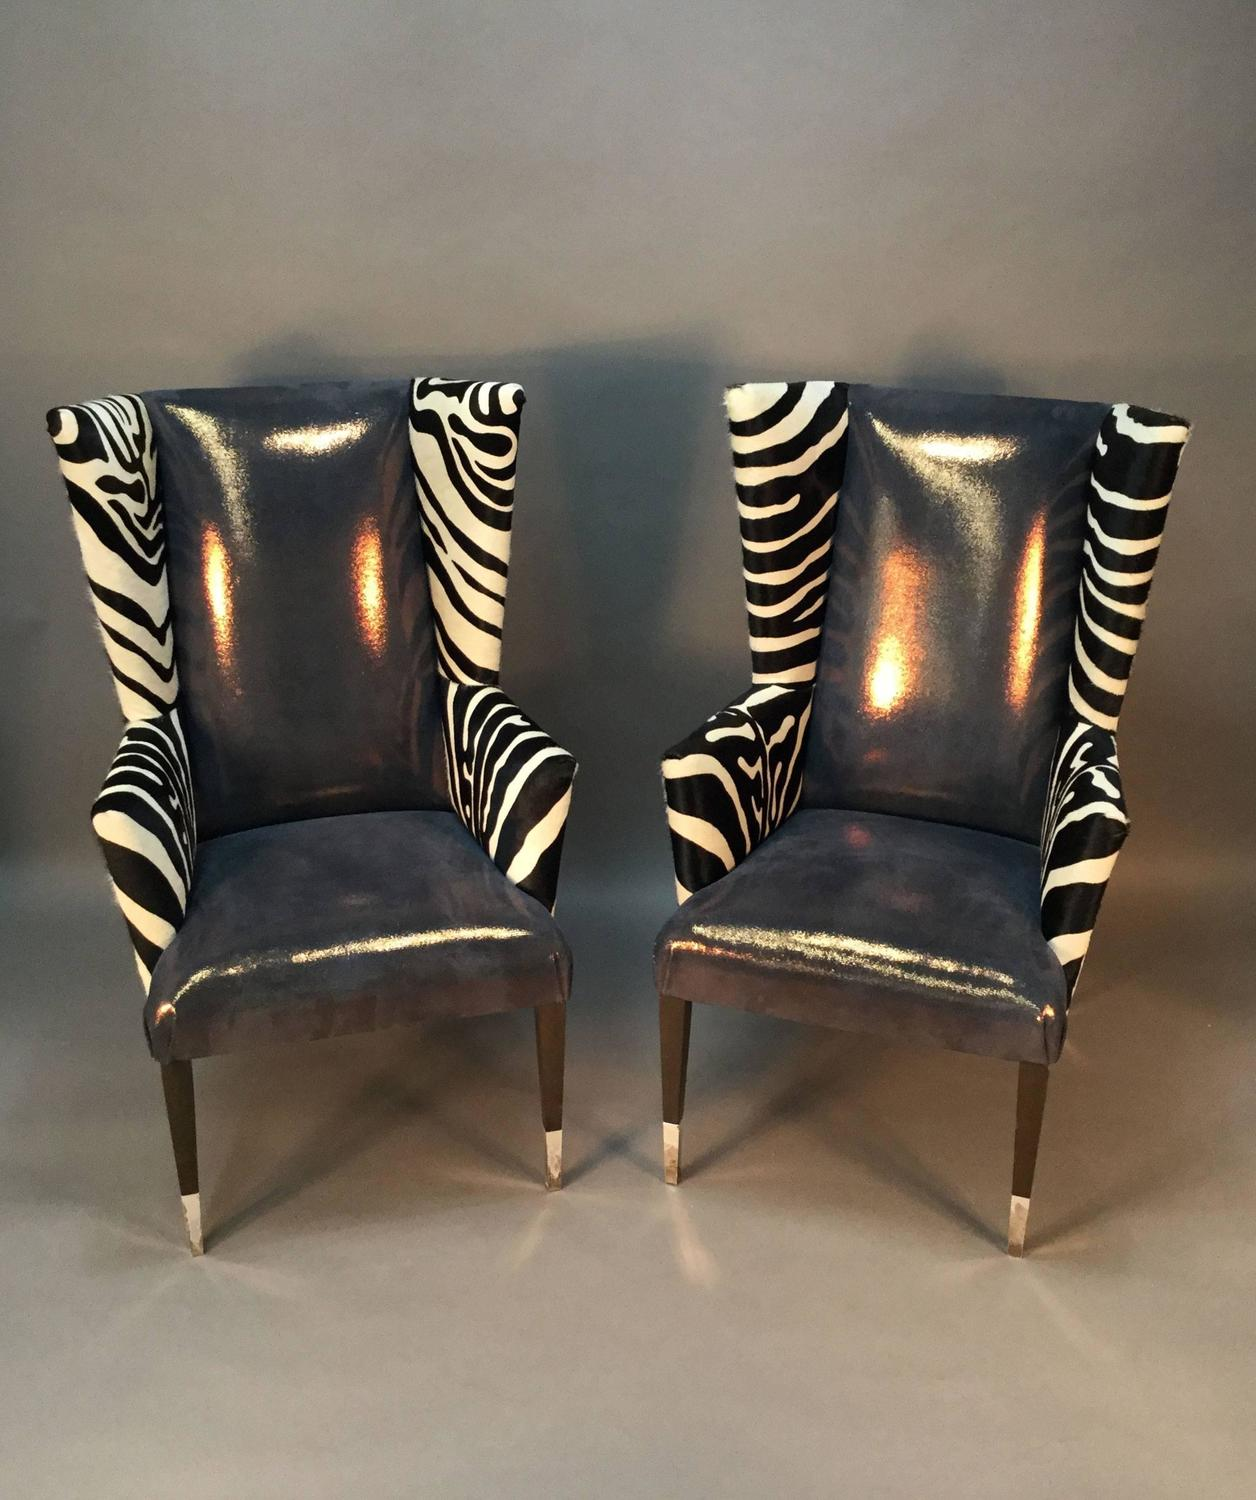 zebra print chairs for sale what is the standard height to put a chair rail pair of modern wingback in printed cowhide